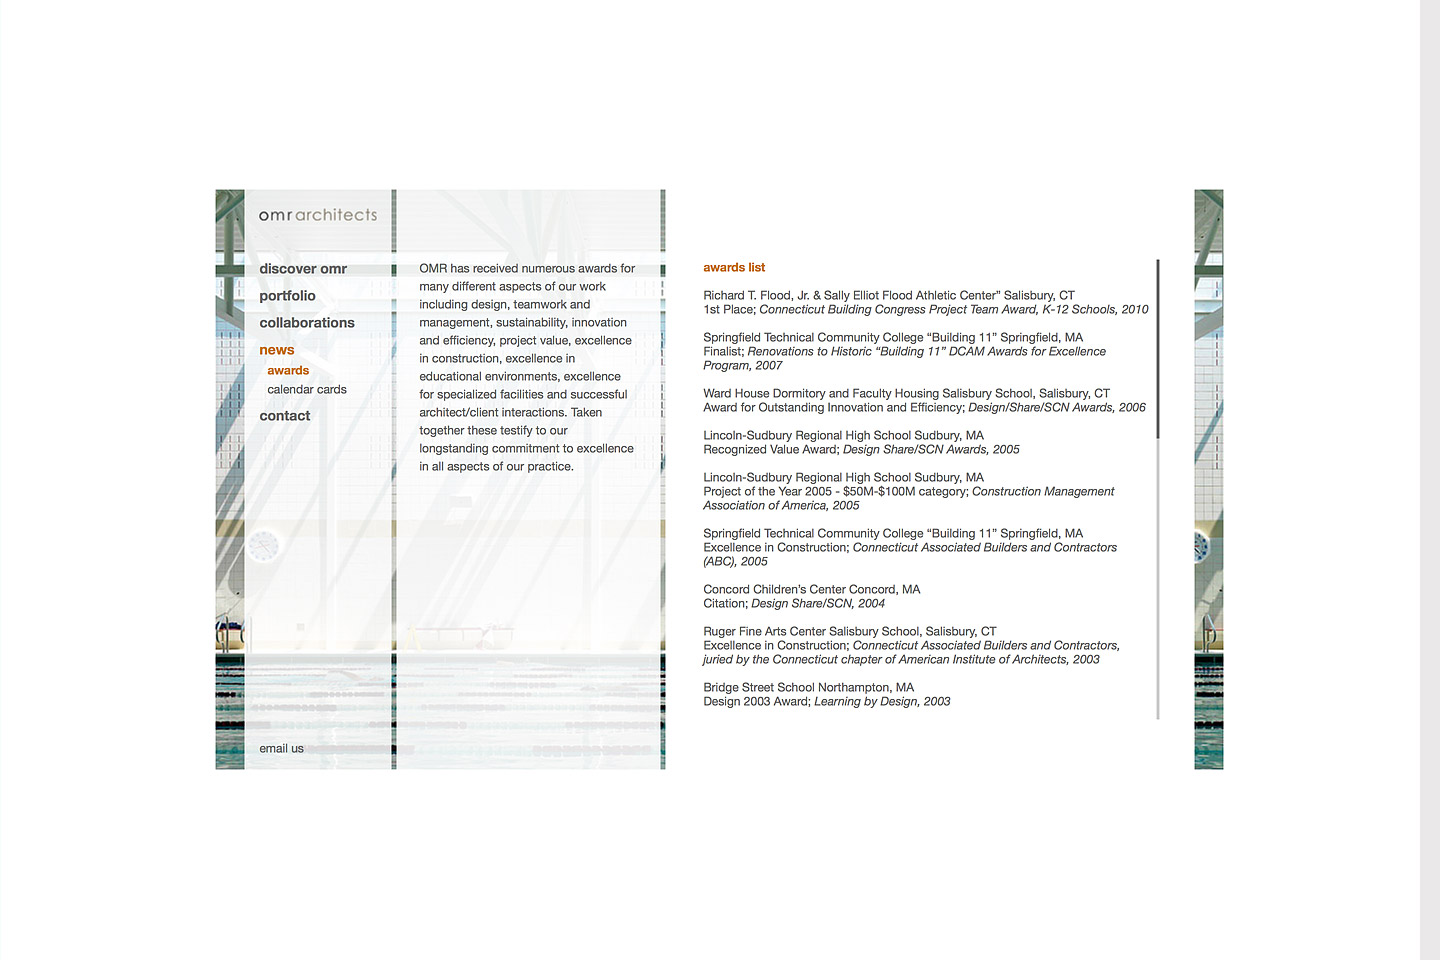 a screen capture of the omr architects awards page, detailing in writing, various awards omr architects has won